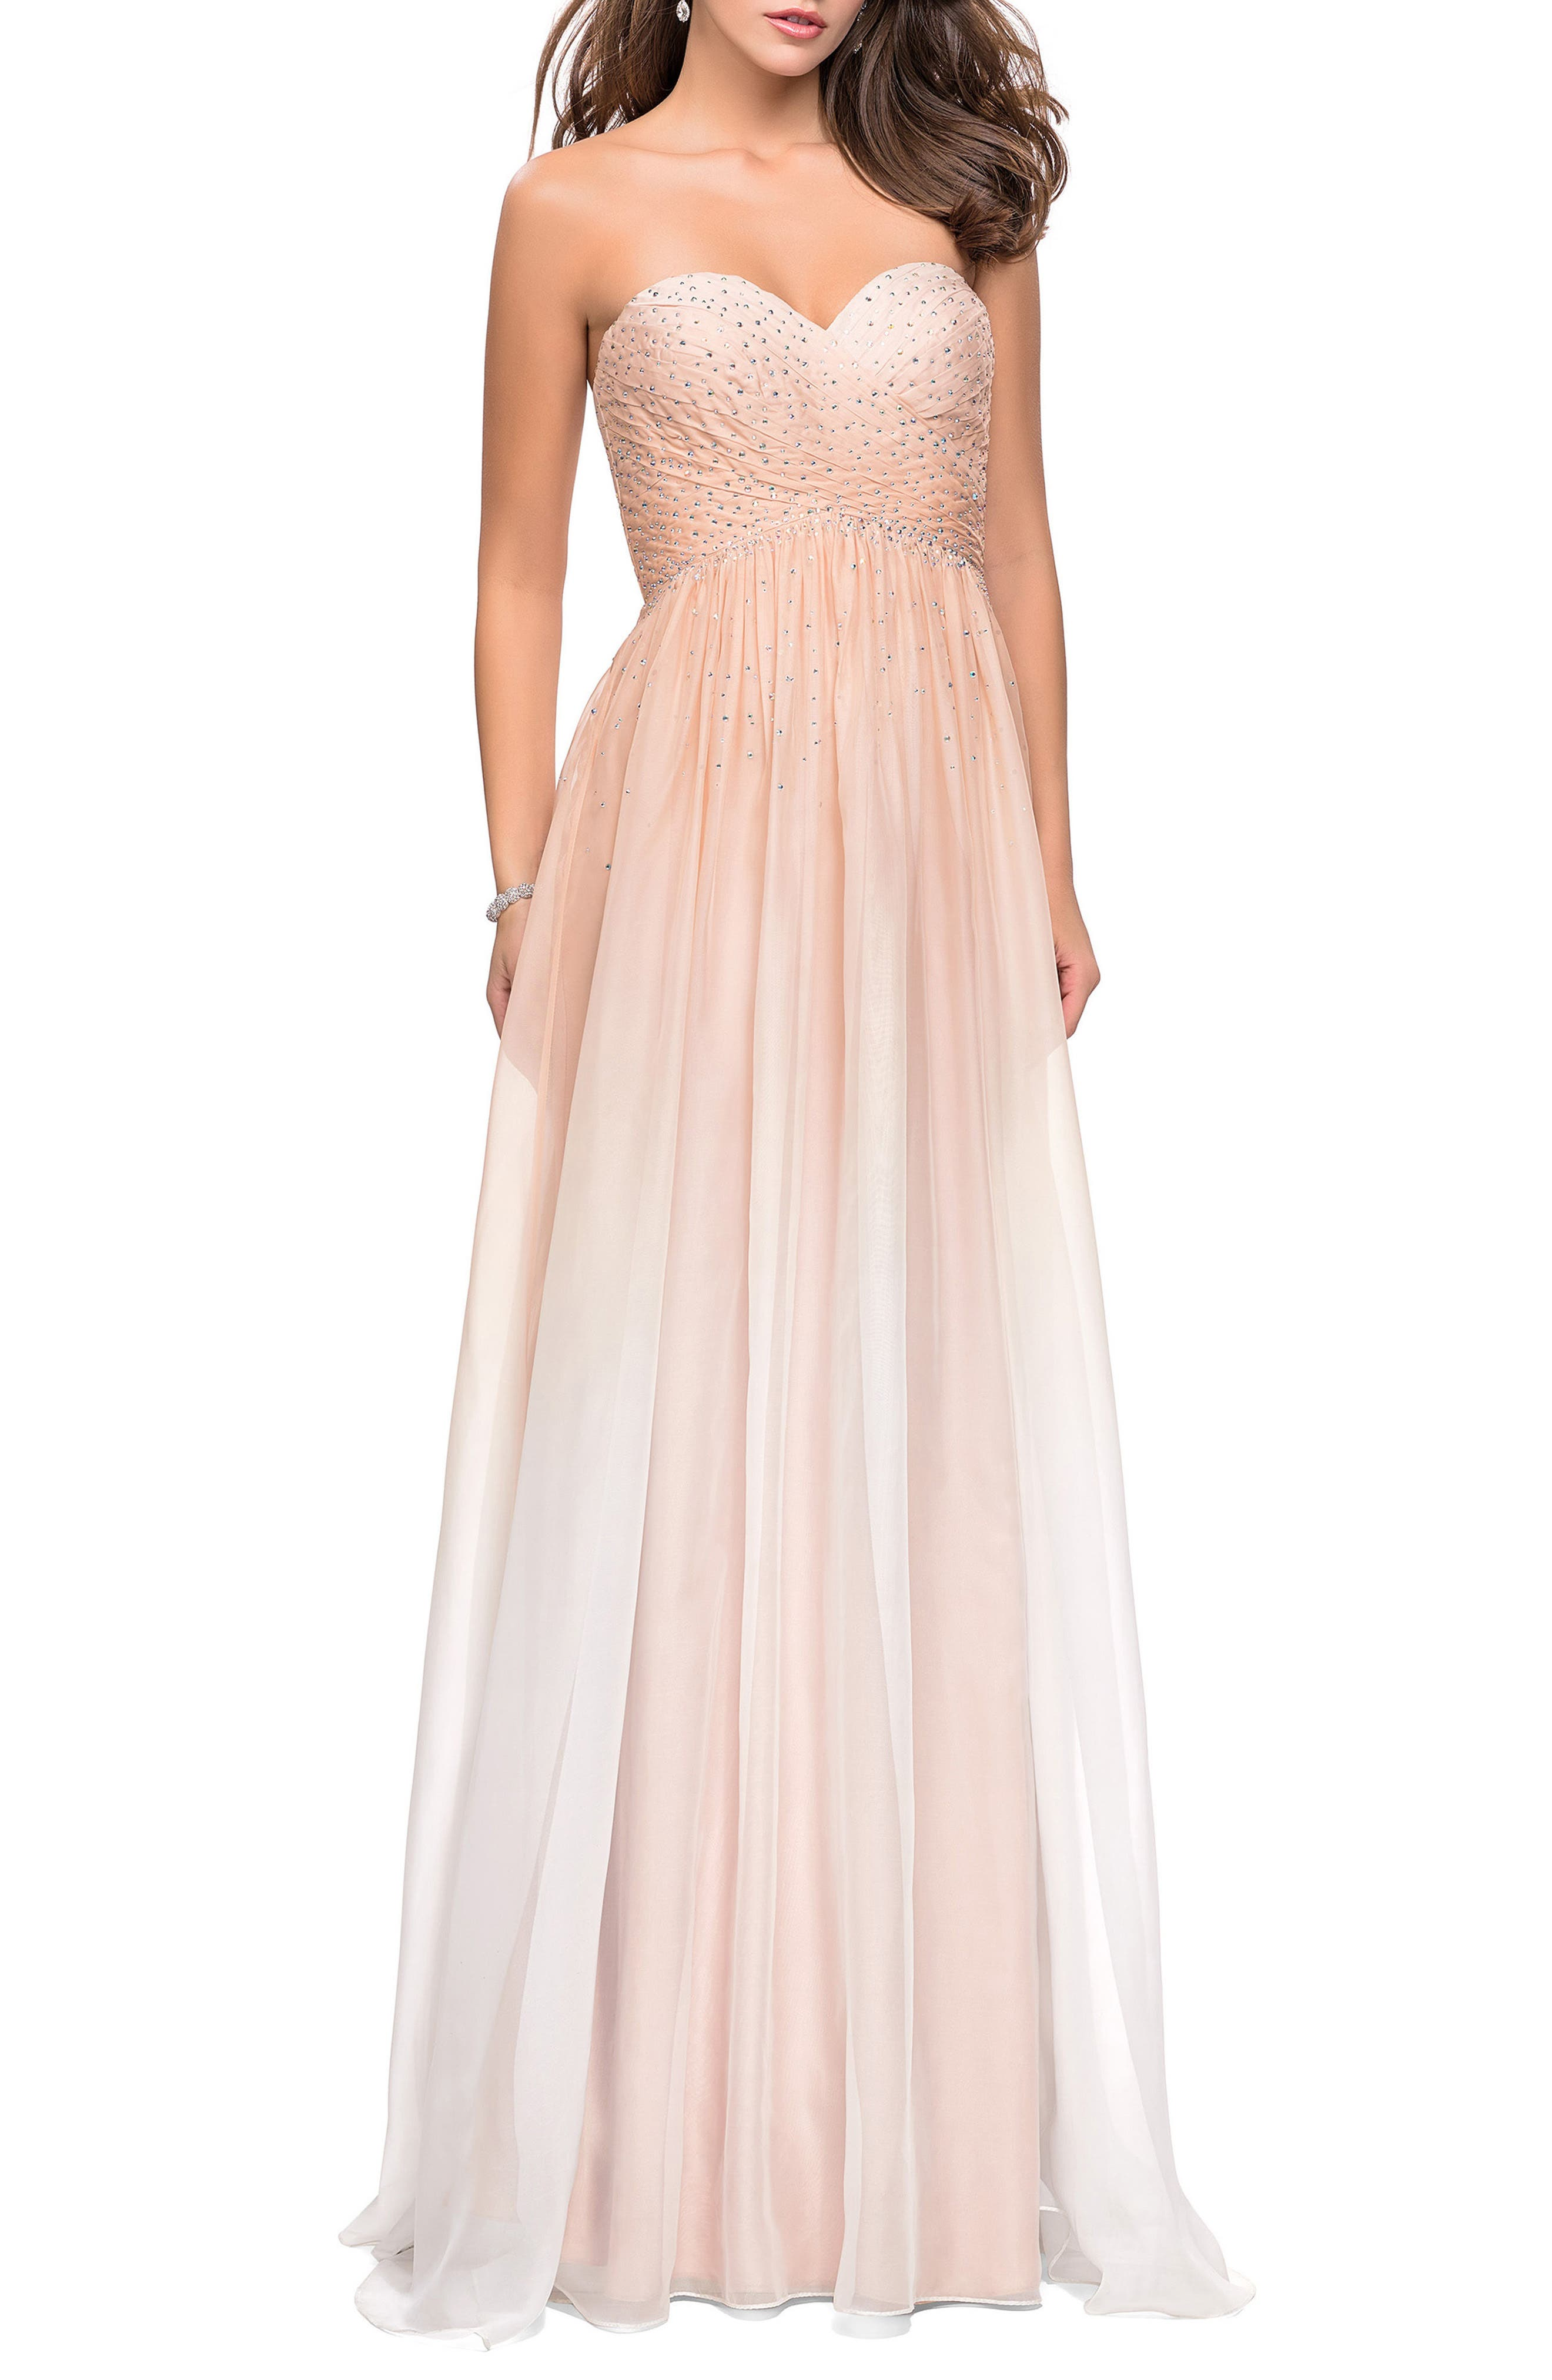 Strapless Chiffon Gown,                         Main,                         color, 250